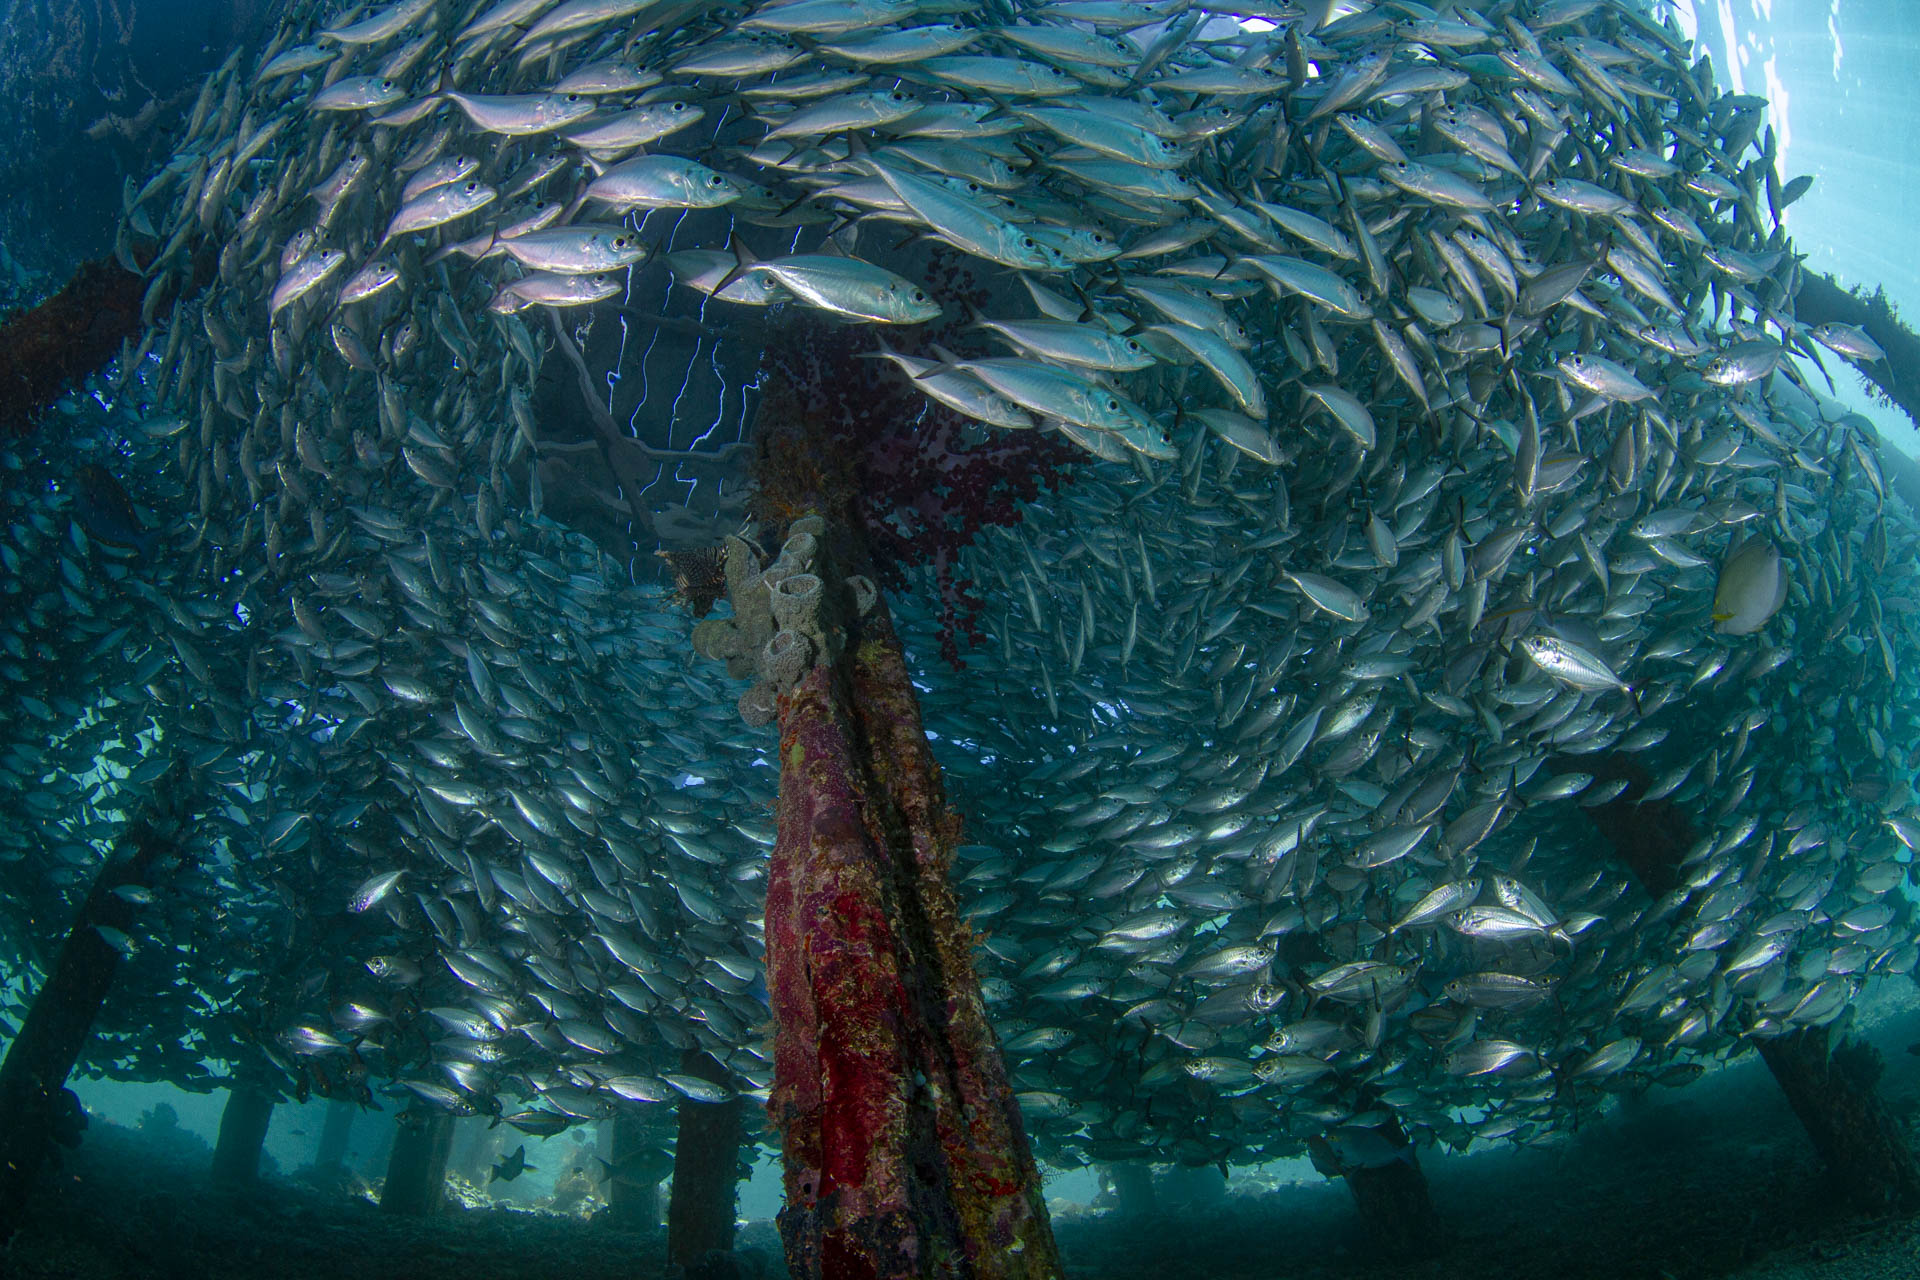 School of fish swirling around pier pilings